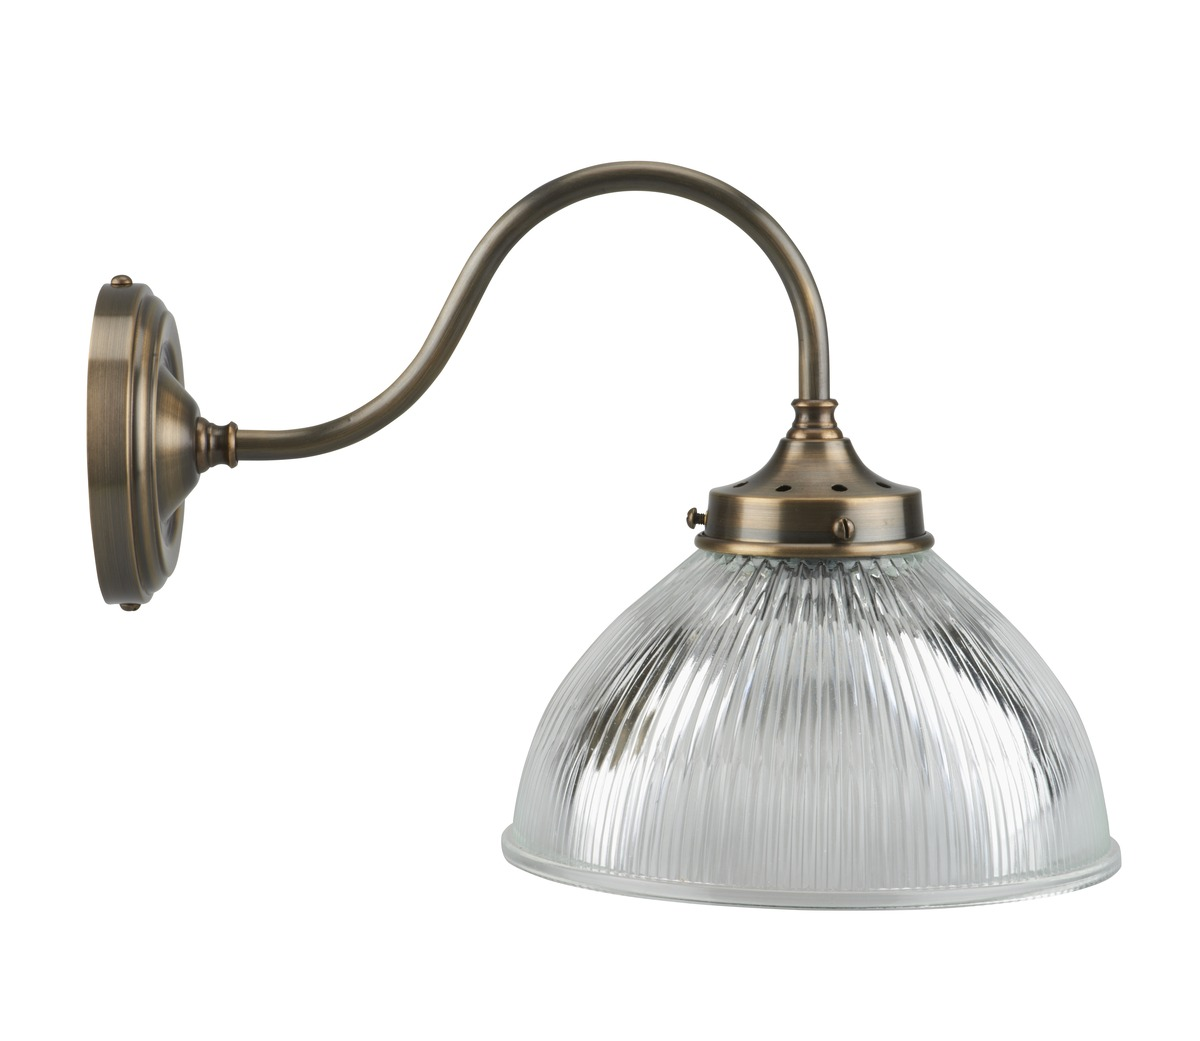 Gare Montparne Wall Light The French House